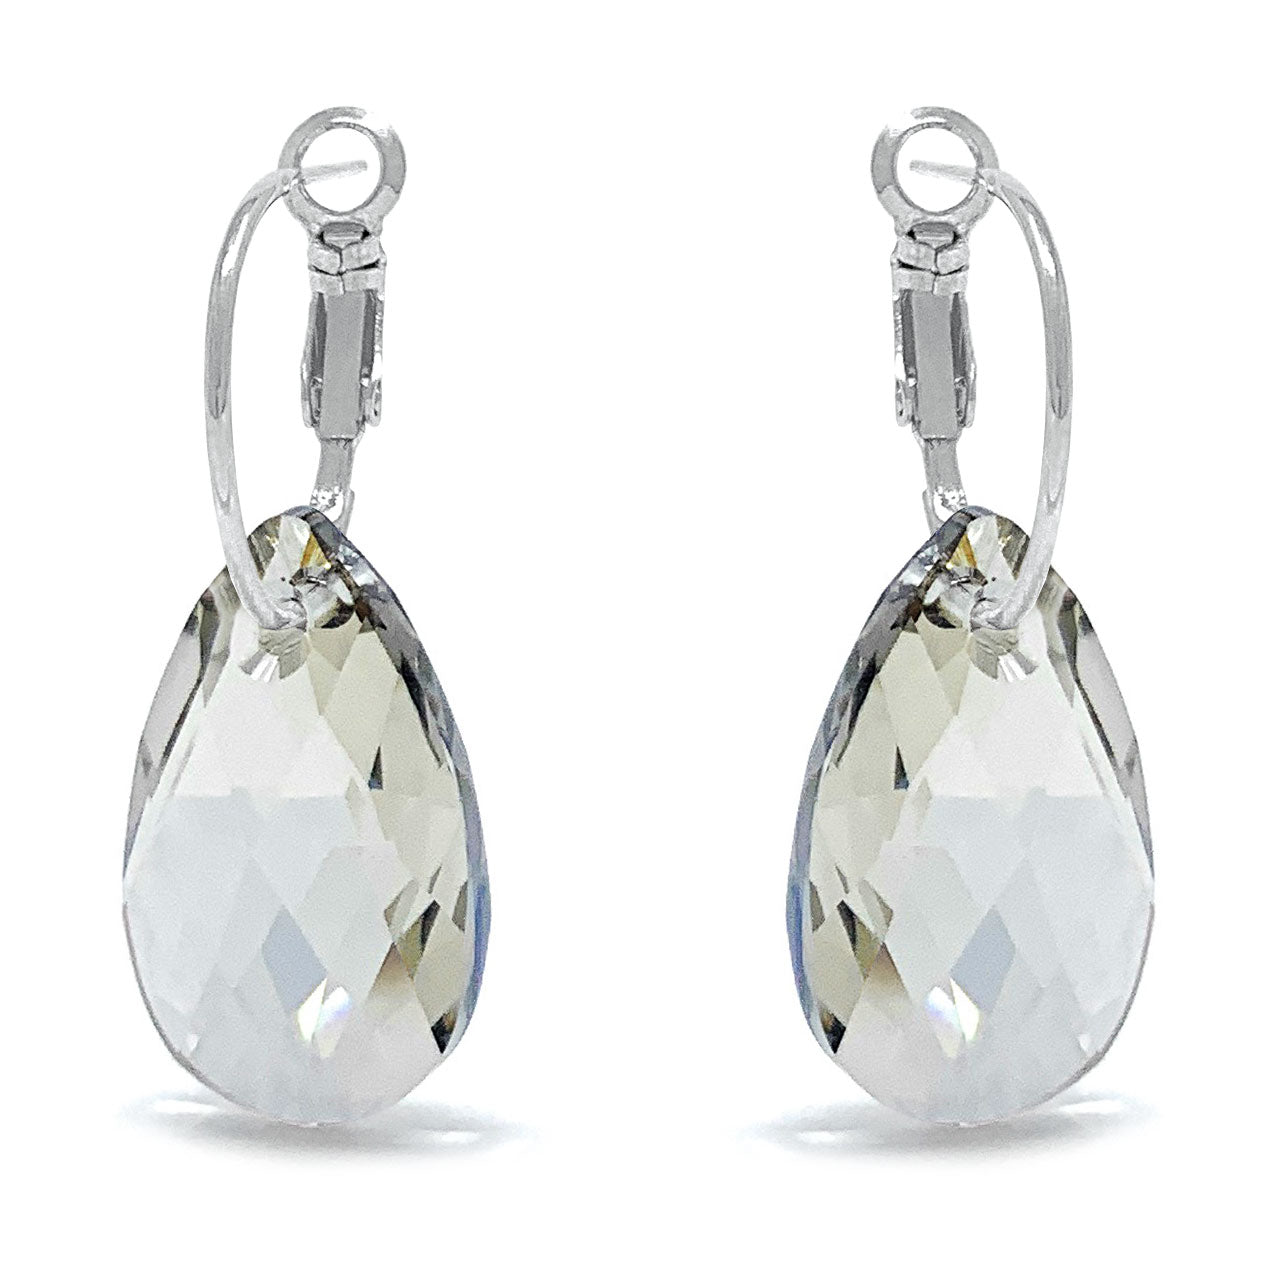 Aurora Drop Earrings with Grey Silver Shade Pear Crystals from Swarovski Silver Toned Rhodium Plated - Ed Heart